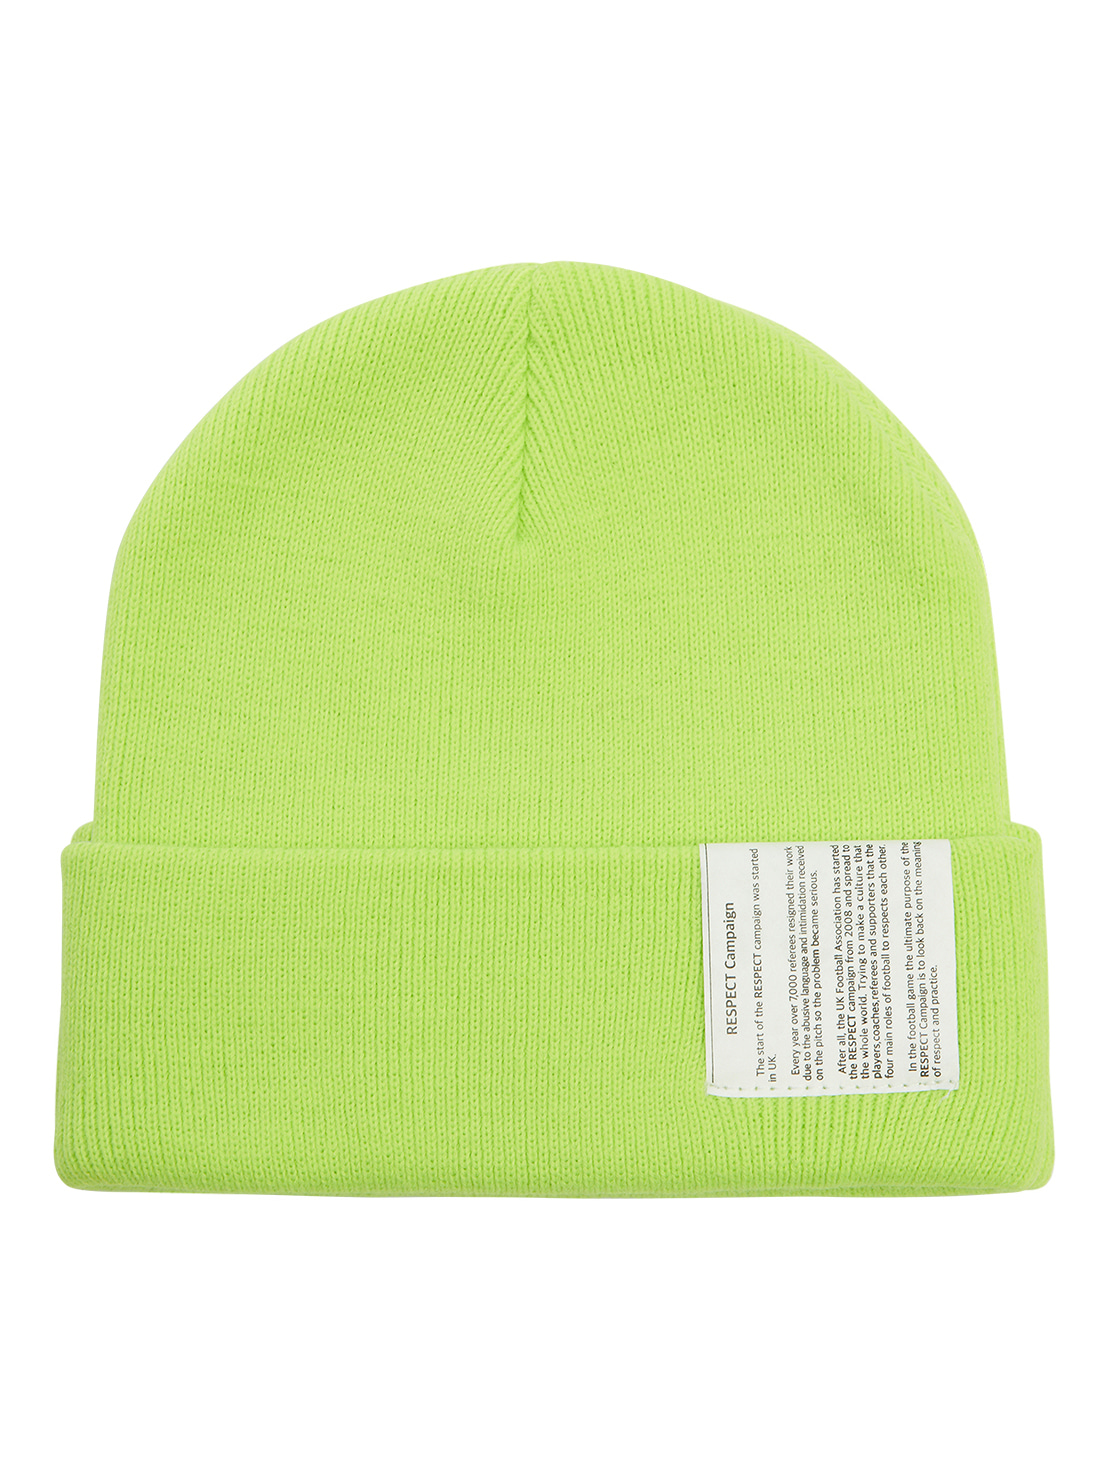 RESPECT LABEL BEANIE - LIME